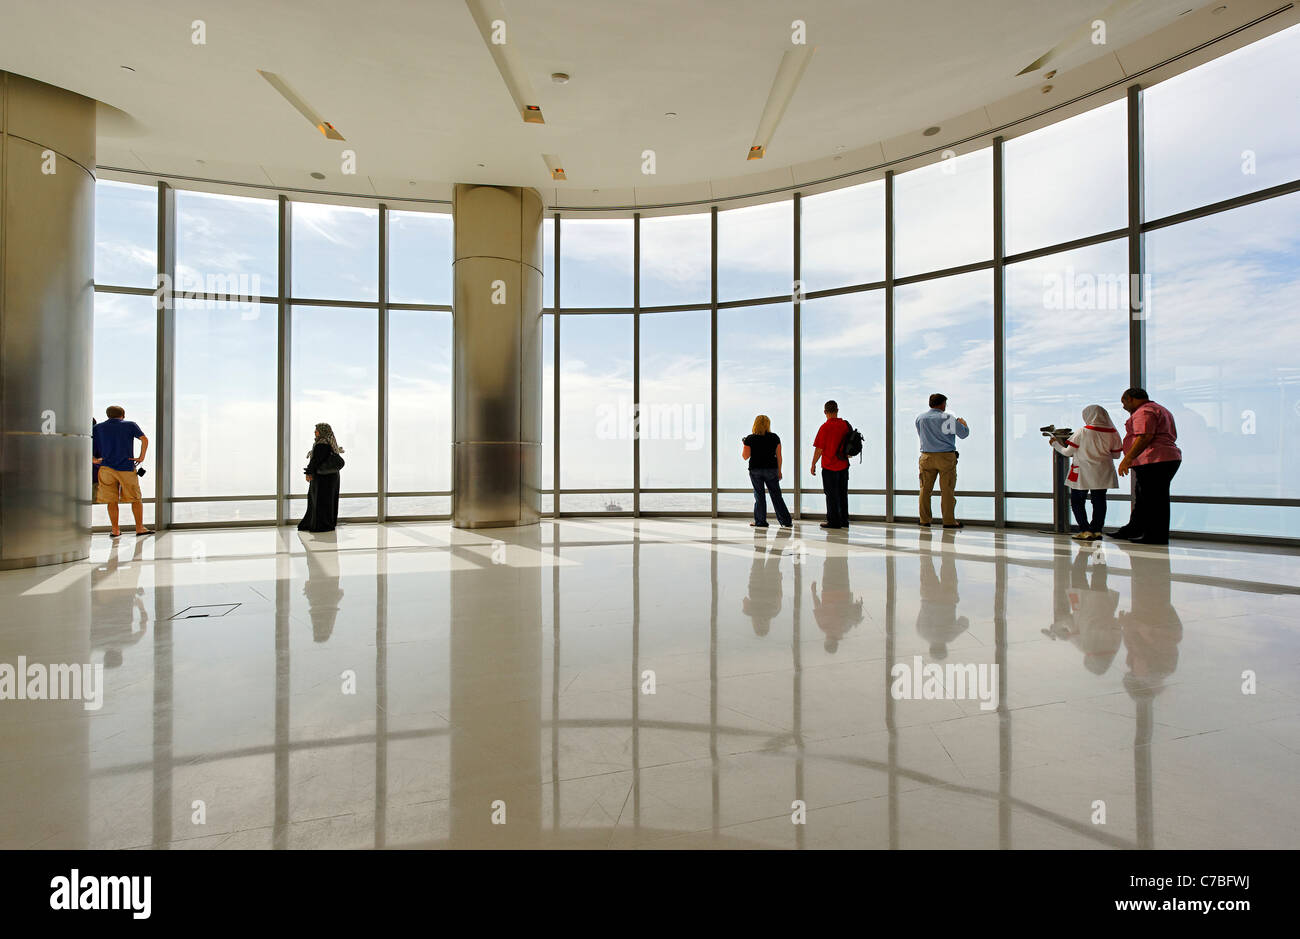 The highest observation deck in the world, AT THE TOP,  BURJ KHALIFA, the tallest tower in the world, Dubai, United - Stock Image